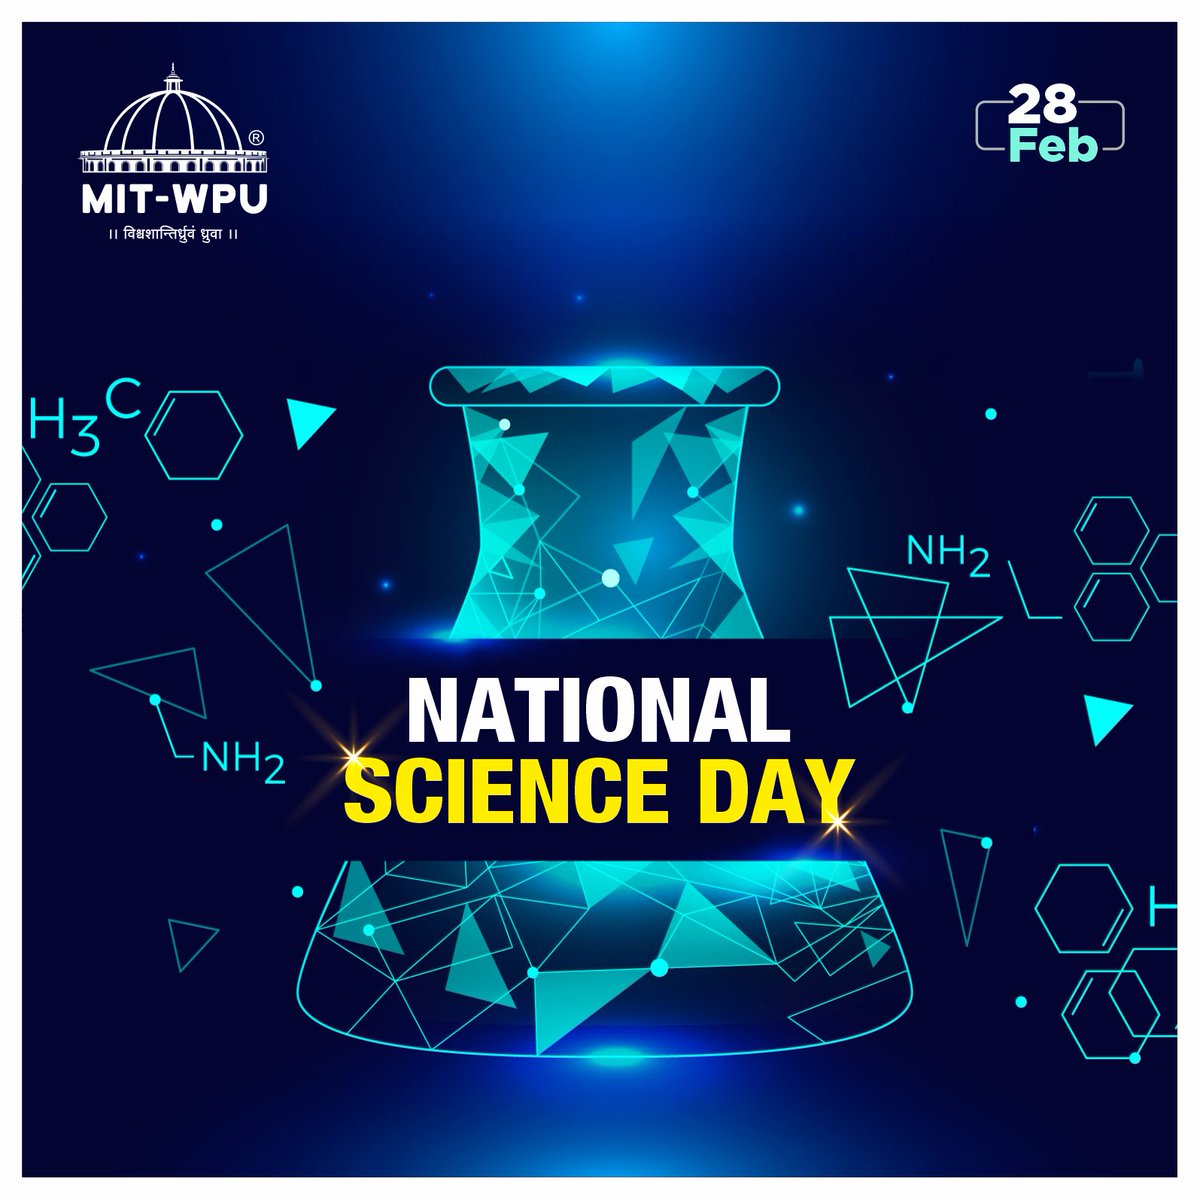 National Science Day has commemorated the discovery of the Raman Effect by C.V. Raman. MIT-WPU salutes the efforts of every scientist of our country to create innovations and inventions.   #MITWPU #NationalScienceDay #Future #STI #education #work #innovation #invention